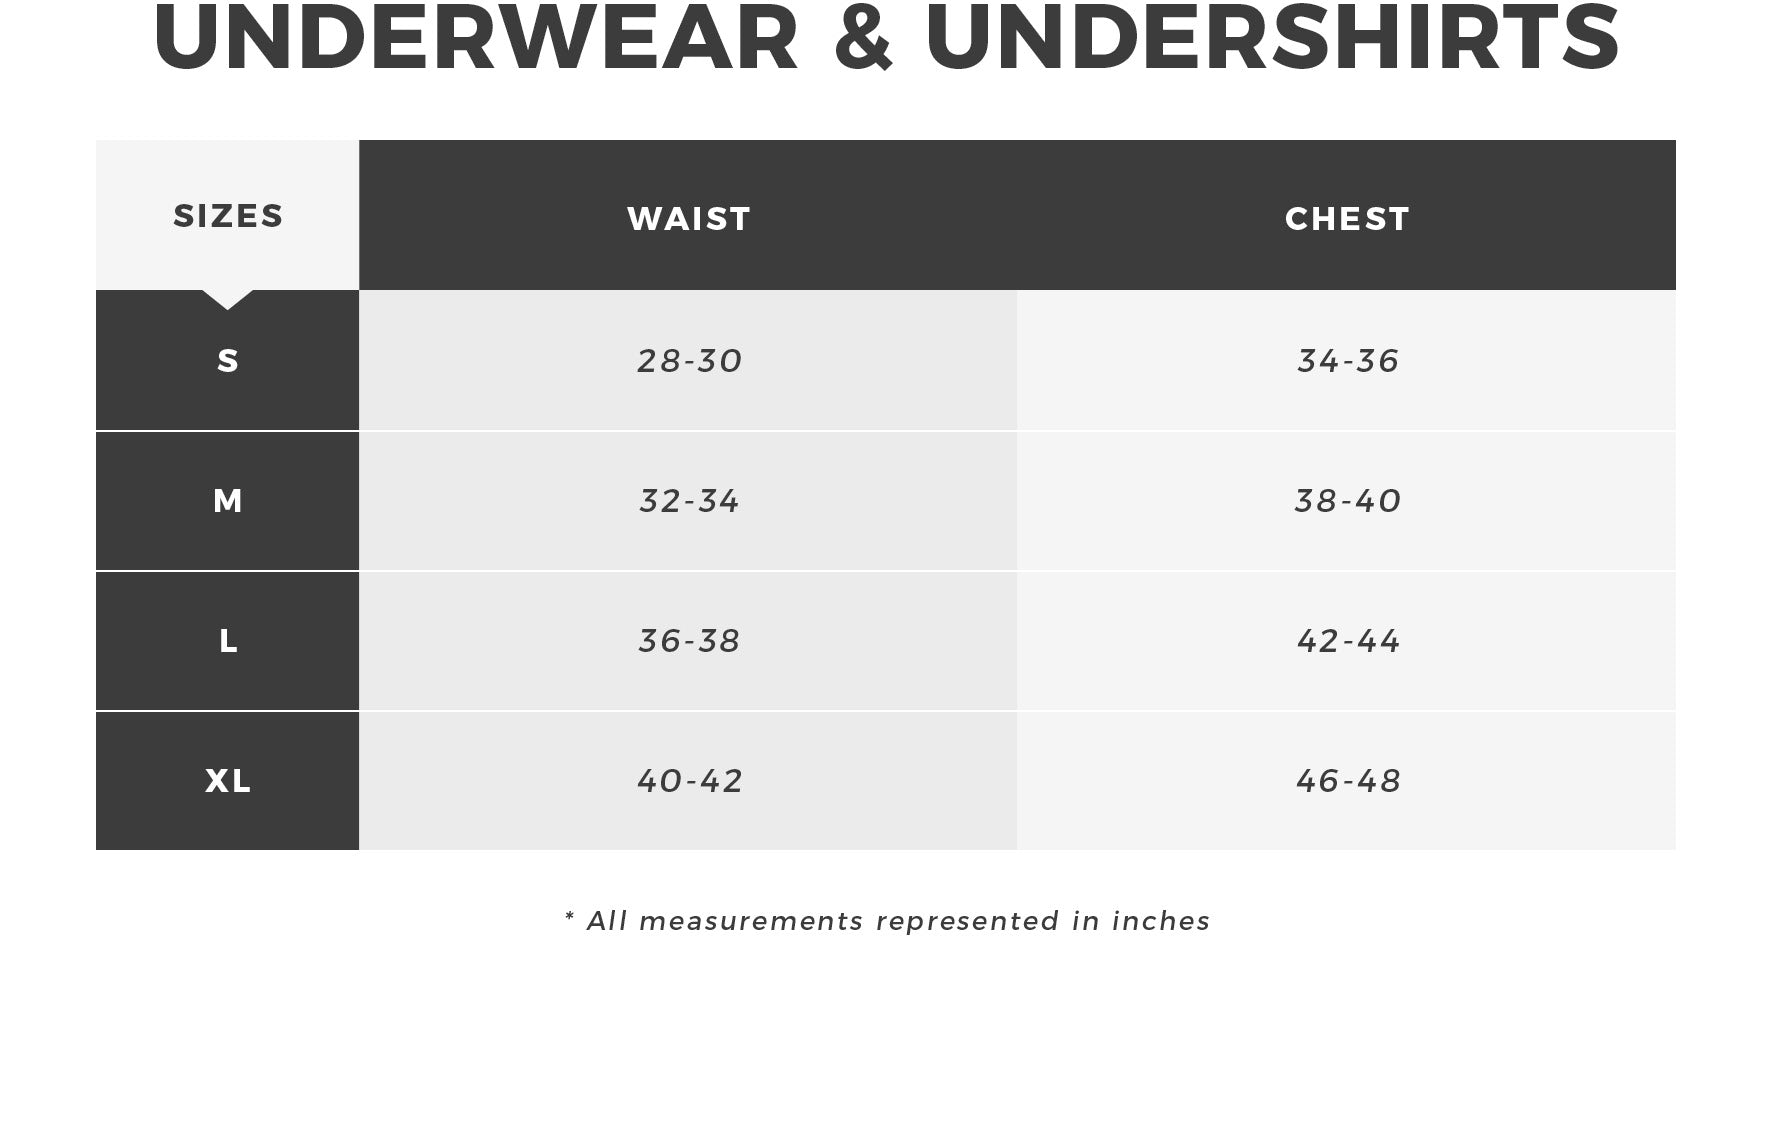 Urban Planet - Men's Underwear + Undershirts Size Guide